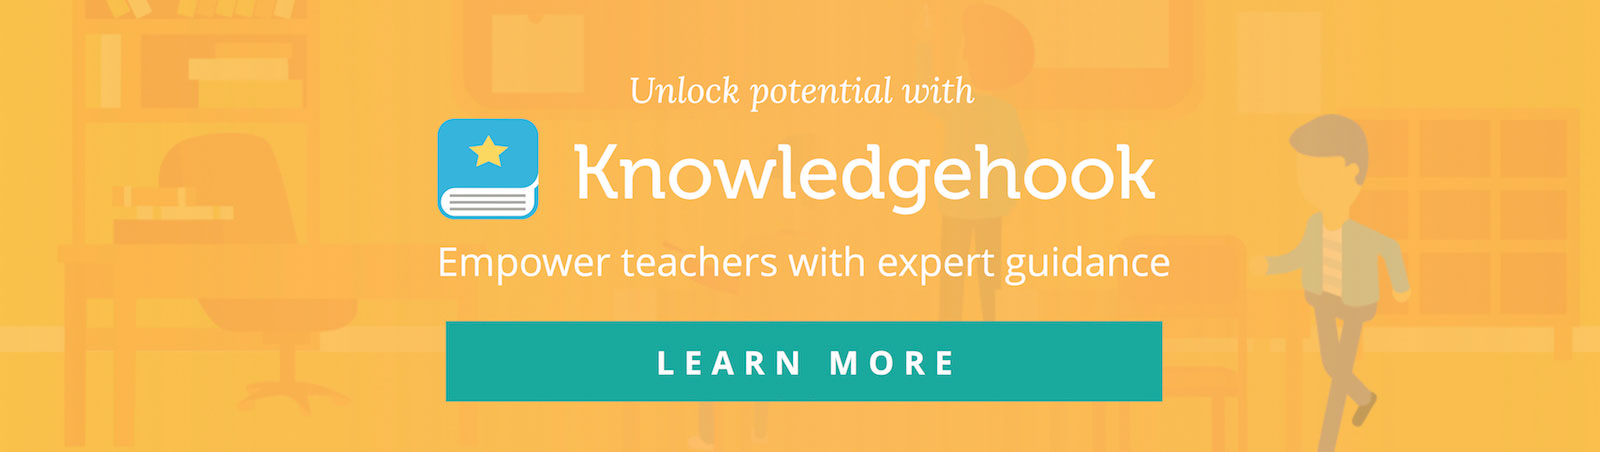 Knowledgehook